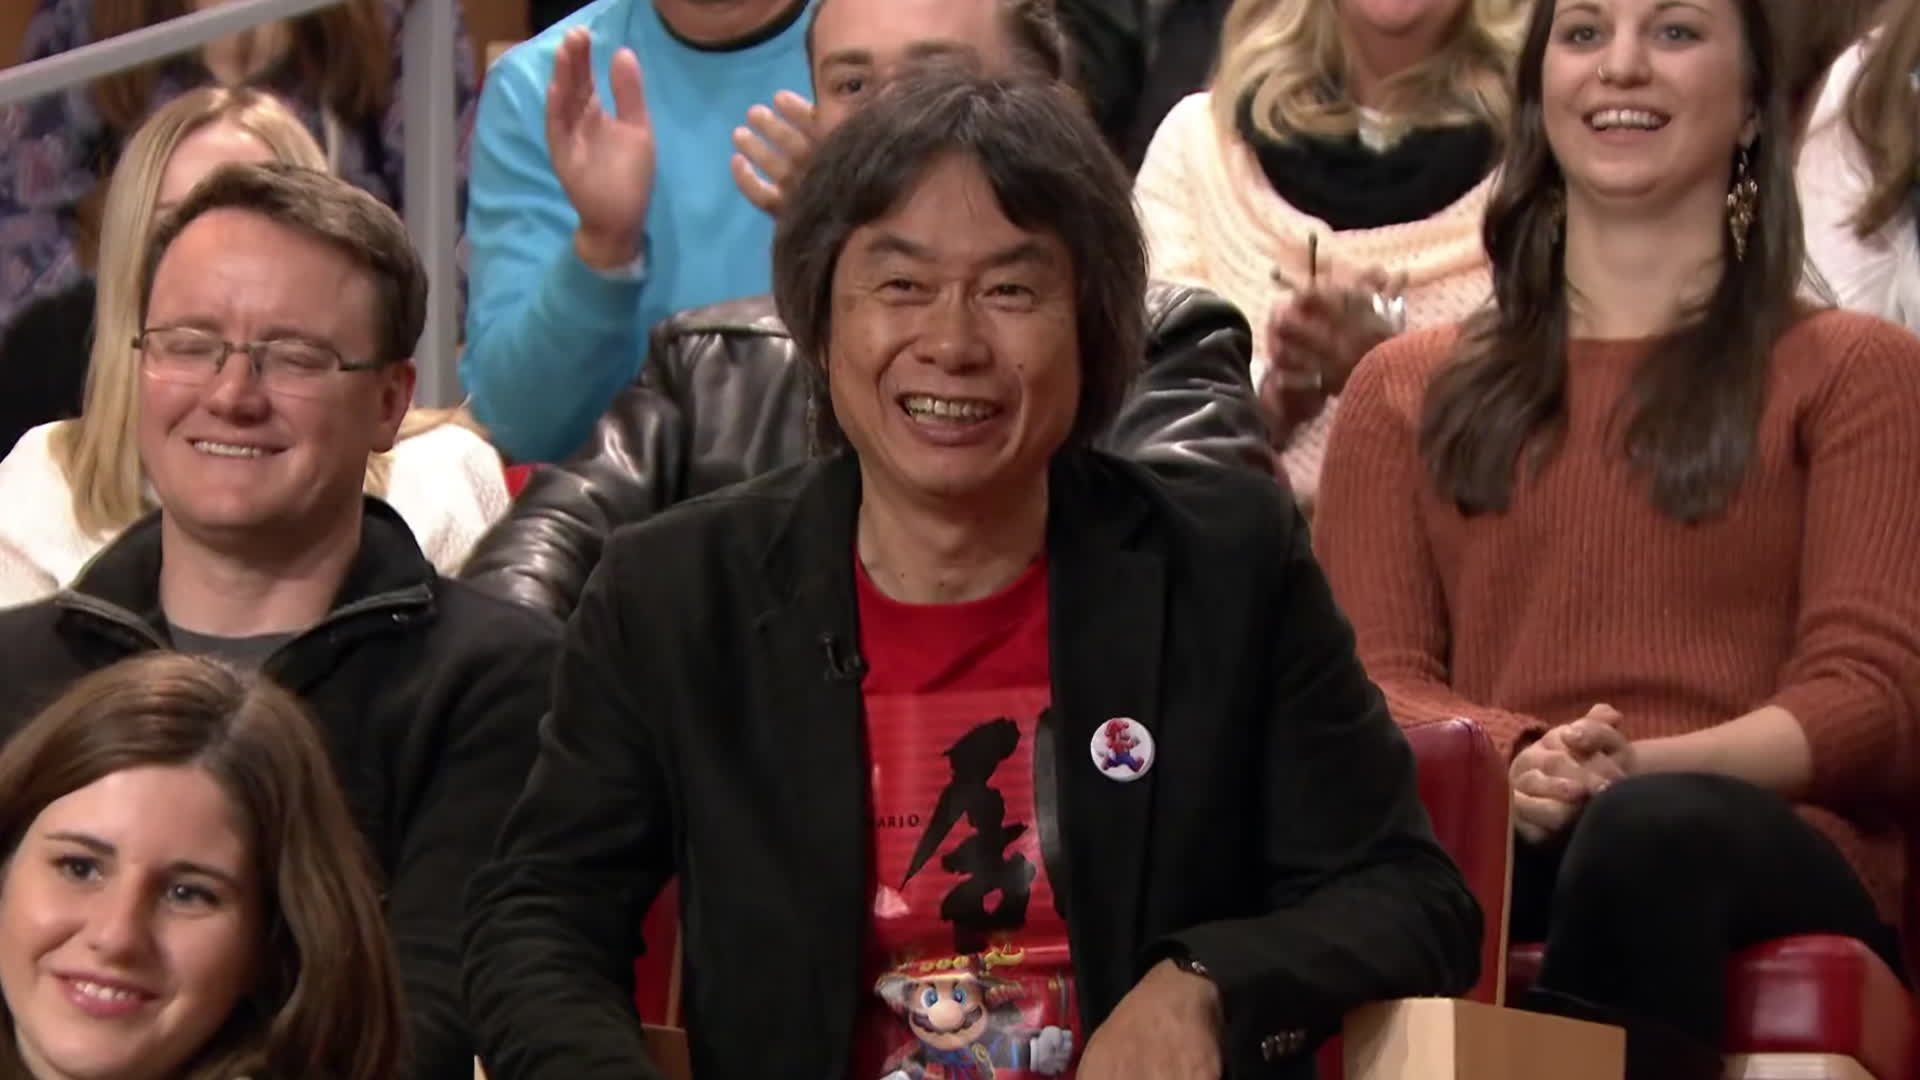 HighestQualityGifs, Miyamoto, SuperSaiyanGifs, Miyamoto Goes Super Saiyan GIFs